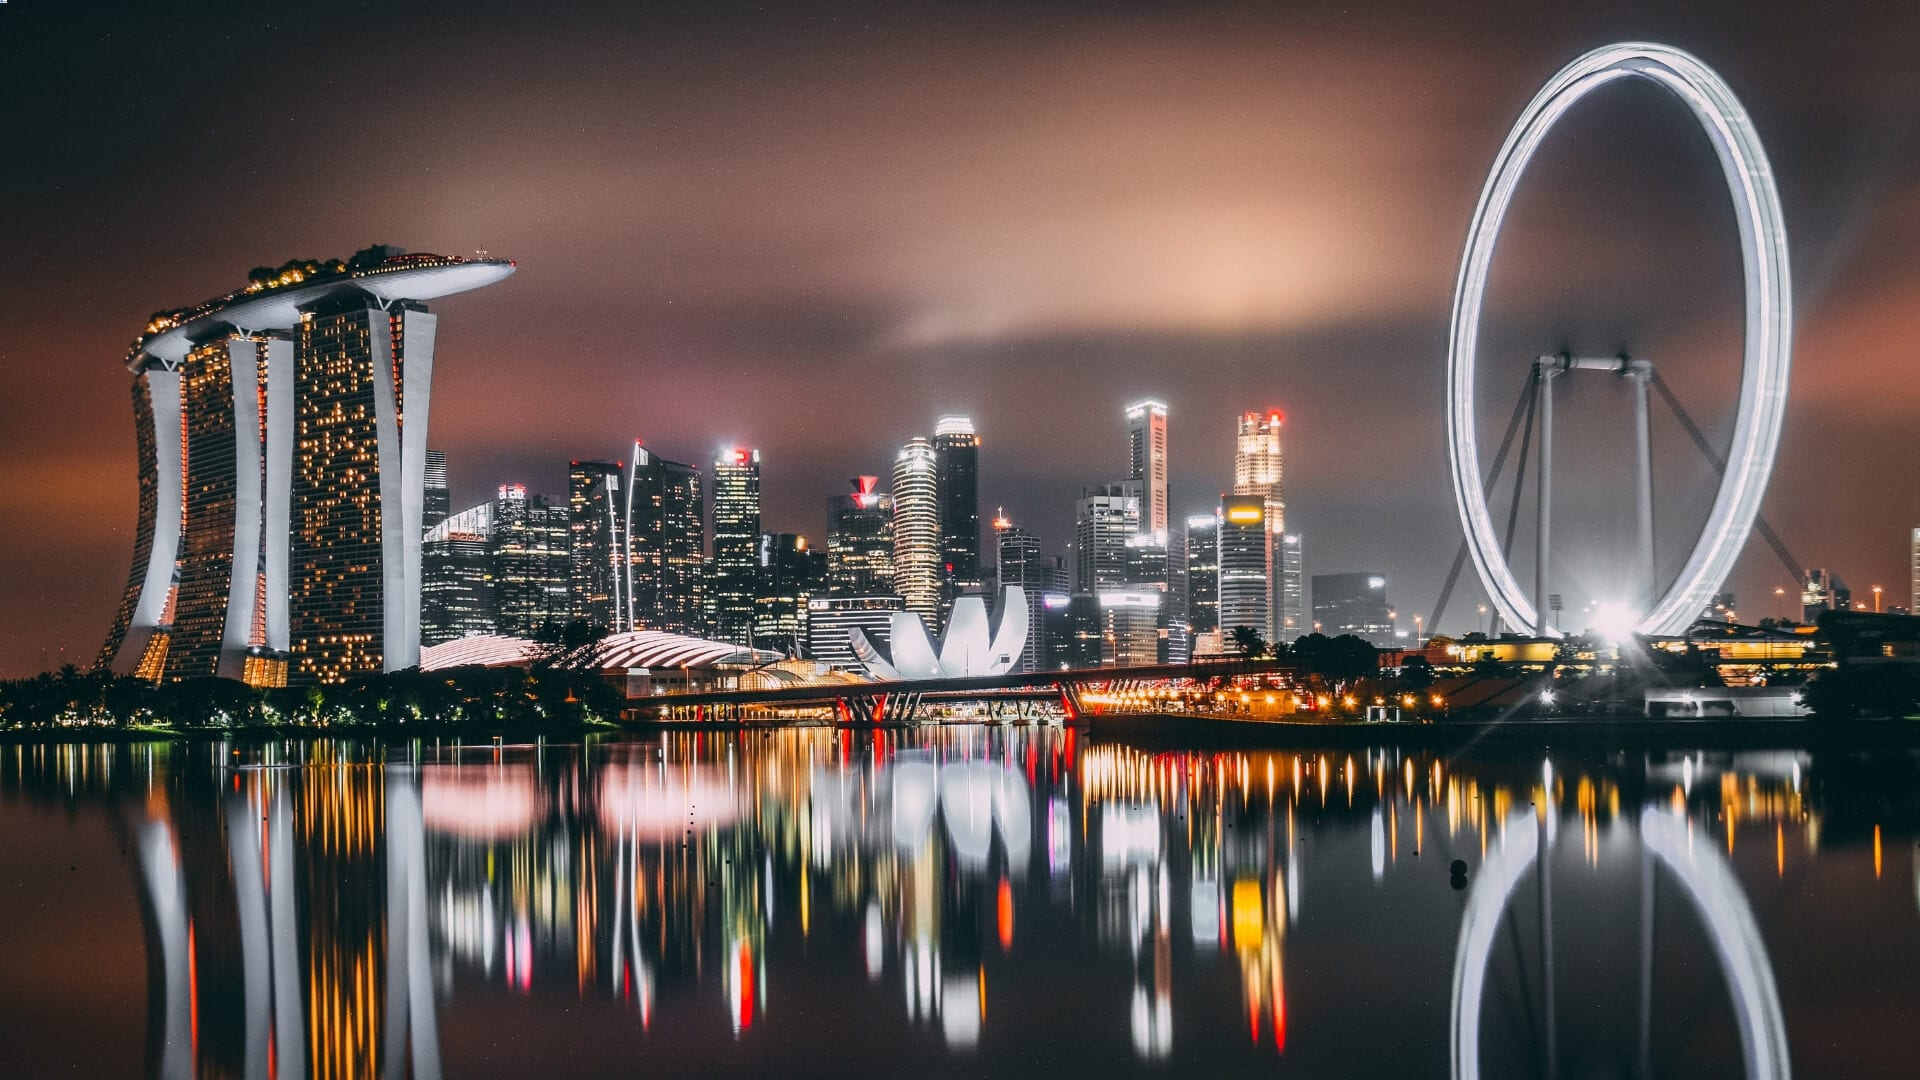 Illuminated high buildings are standing next to a bay during a night in Singapore.